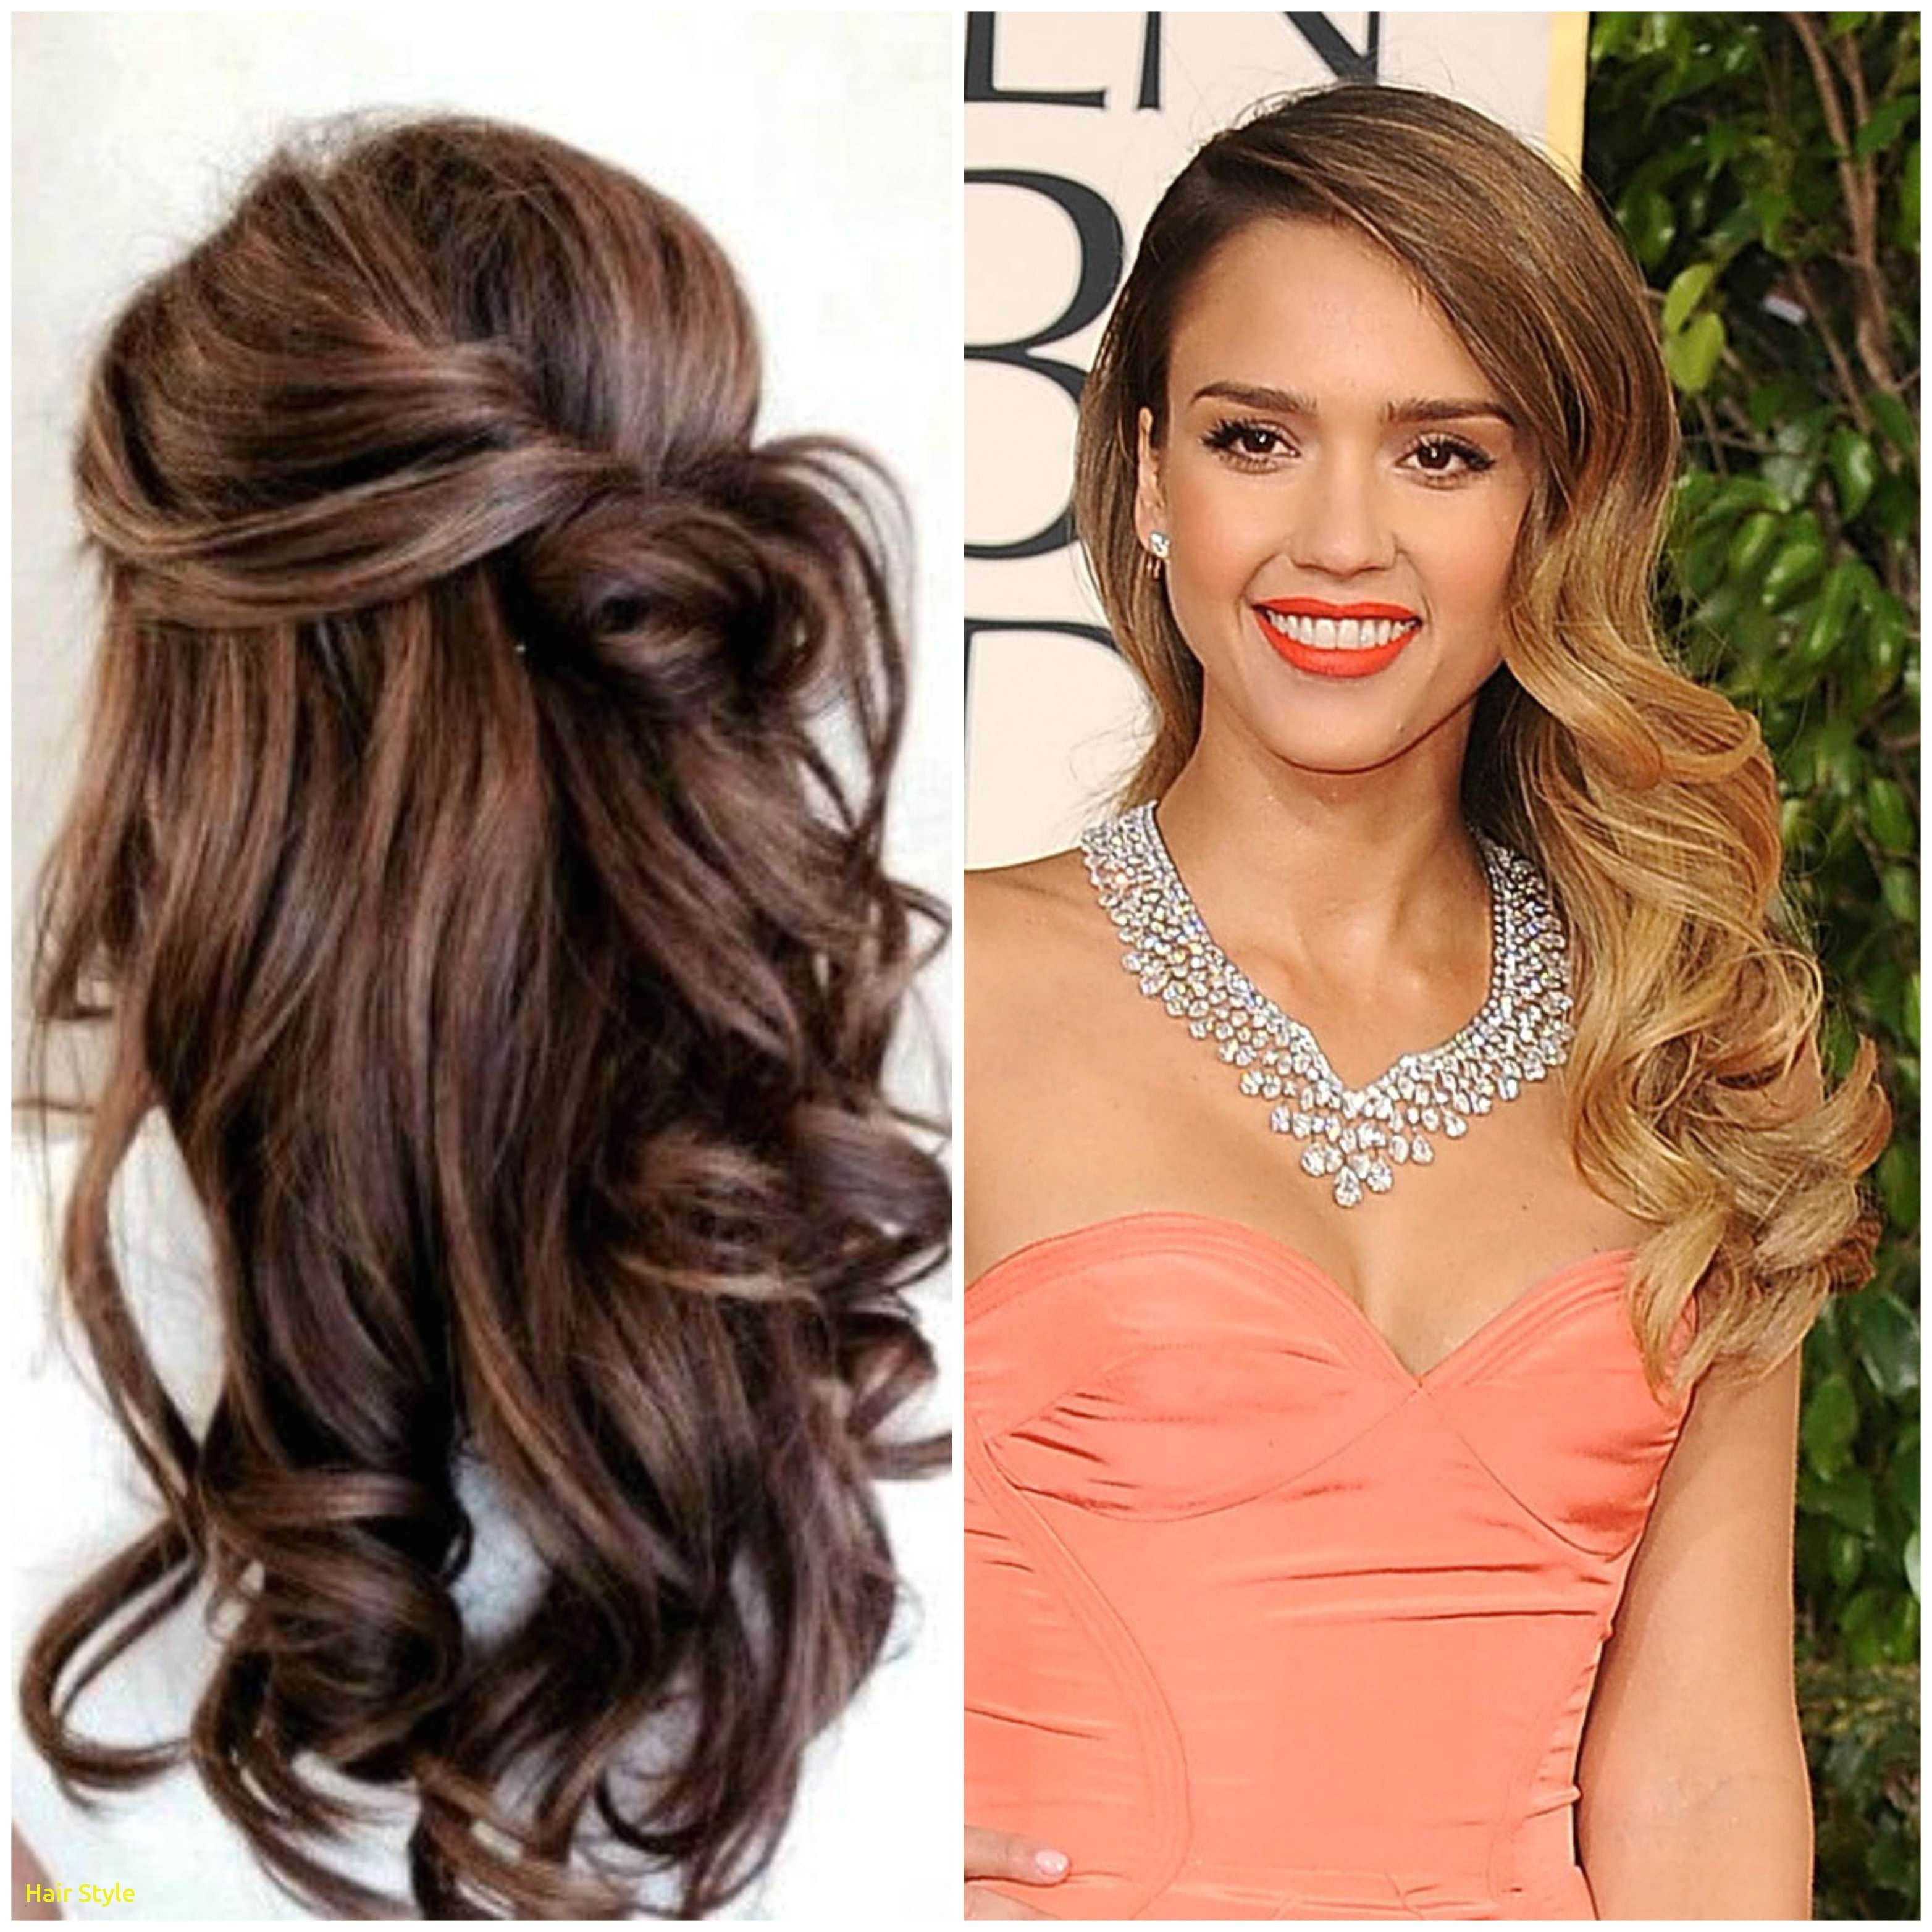 wedding hairstyle inspirational inspirational hairstyles for long hair 2015 luxury i pinimg 1200x 0d